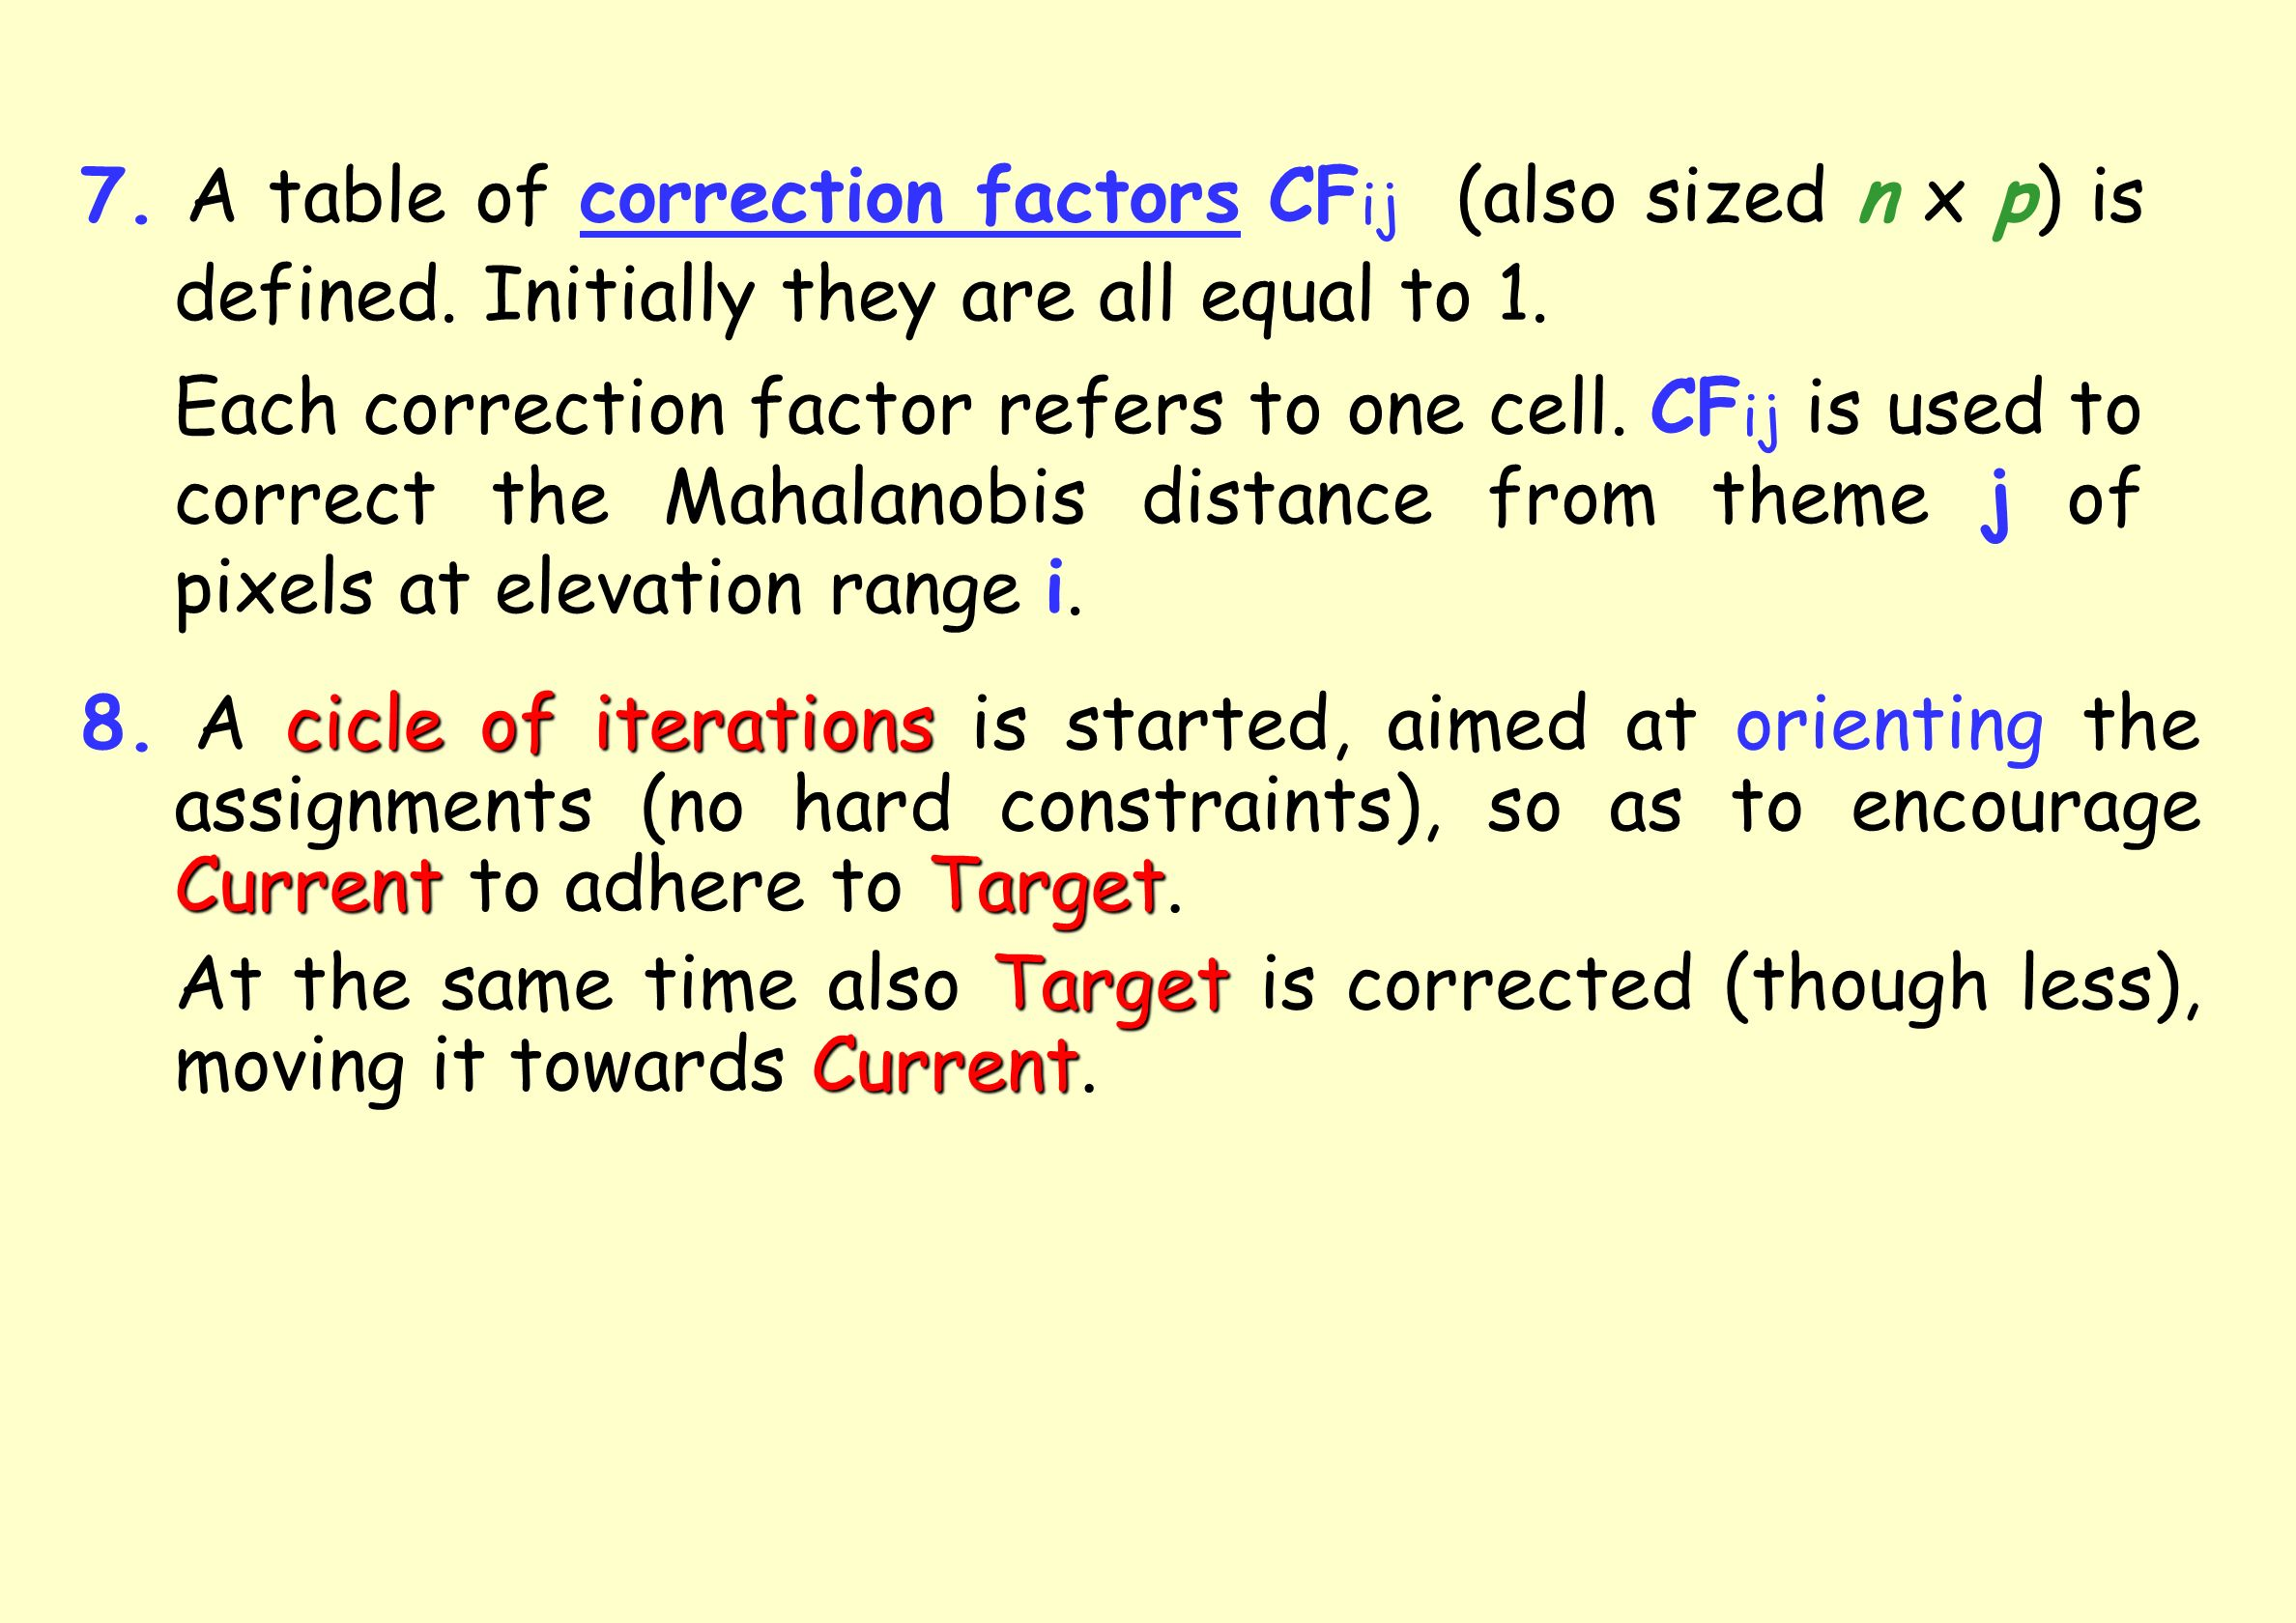 7. A table of correction factors CFij (also sized n x p) is defined